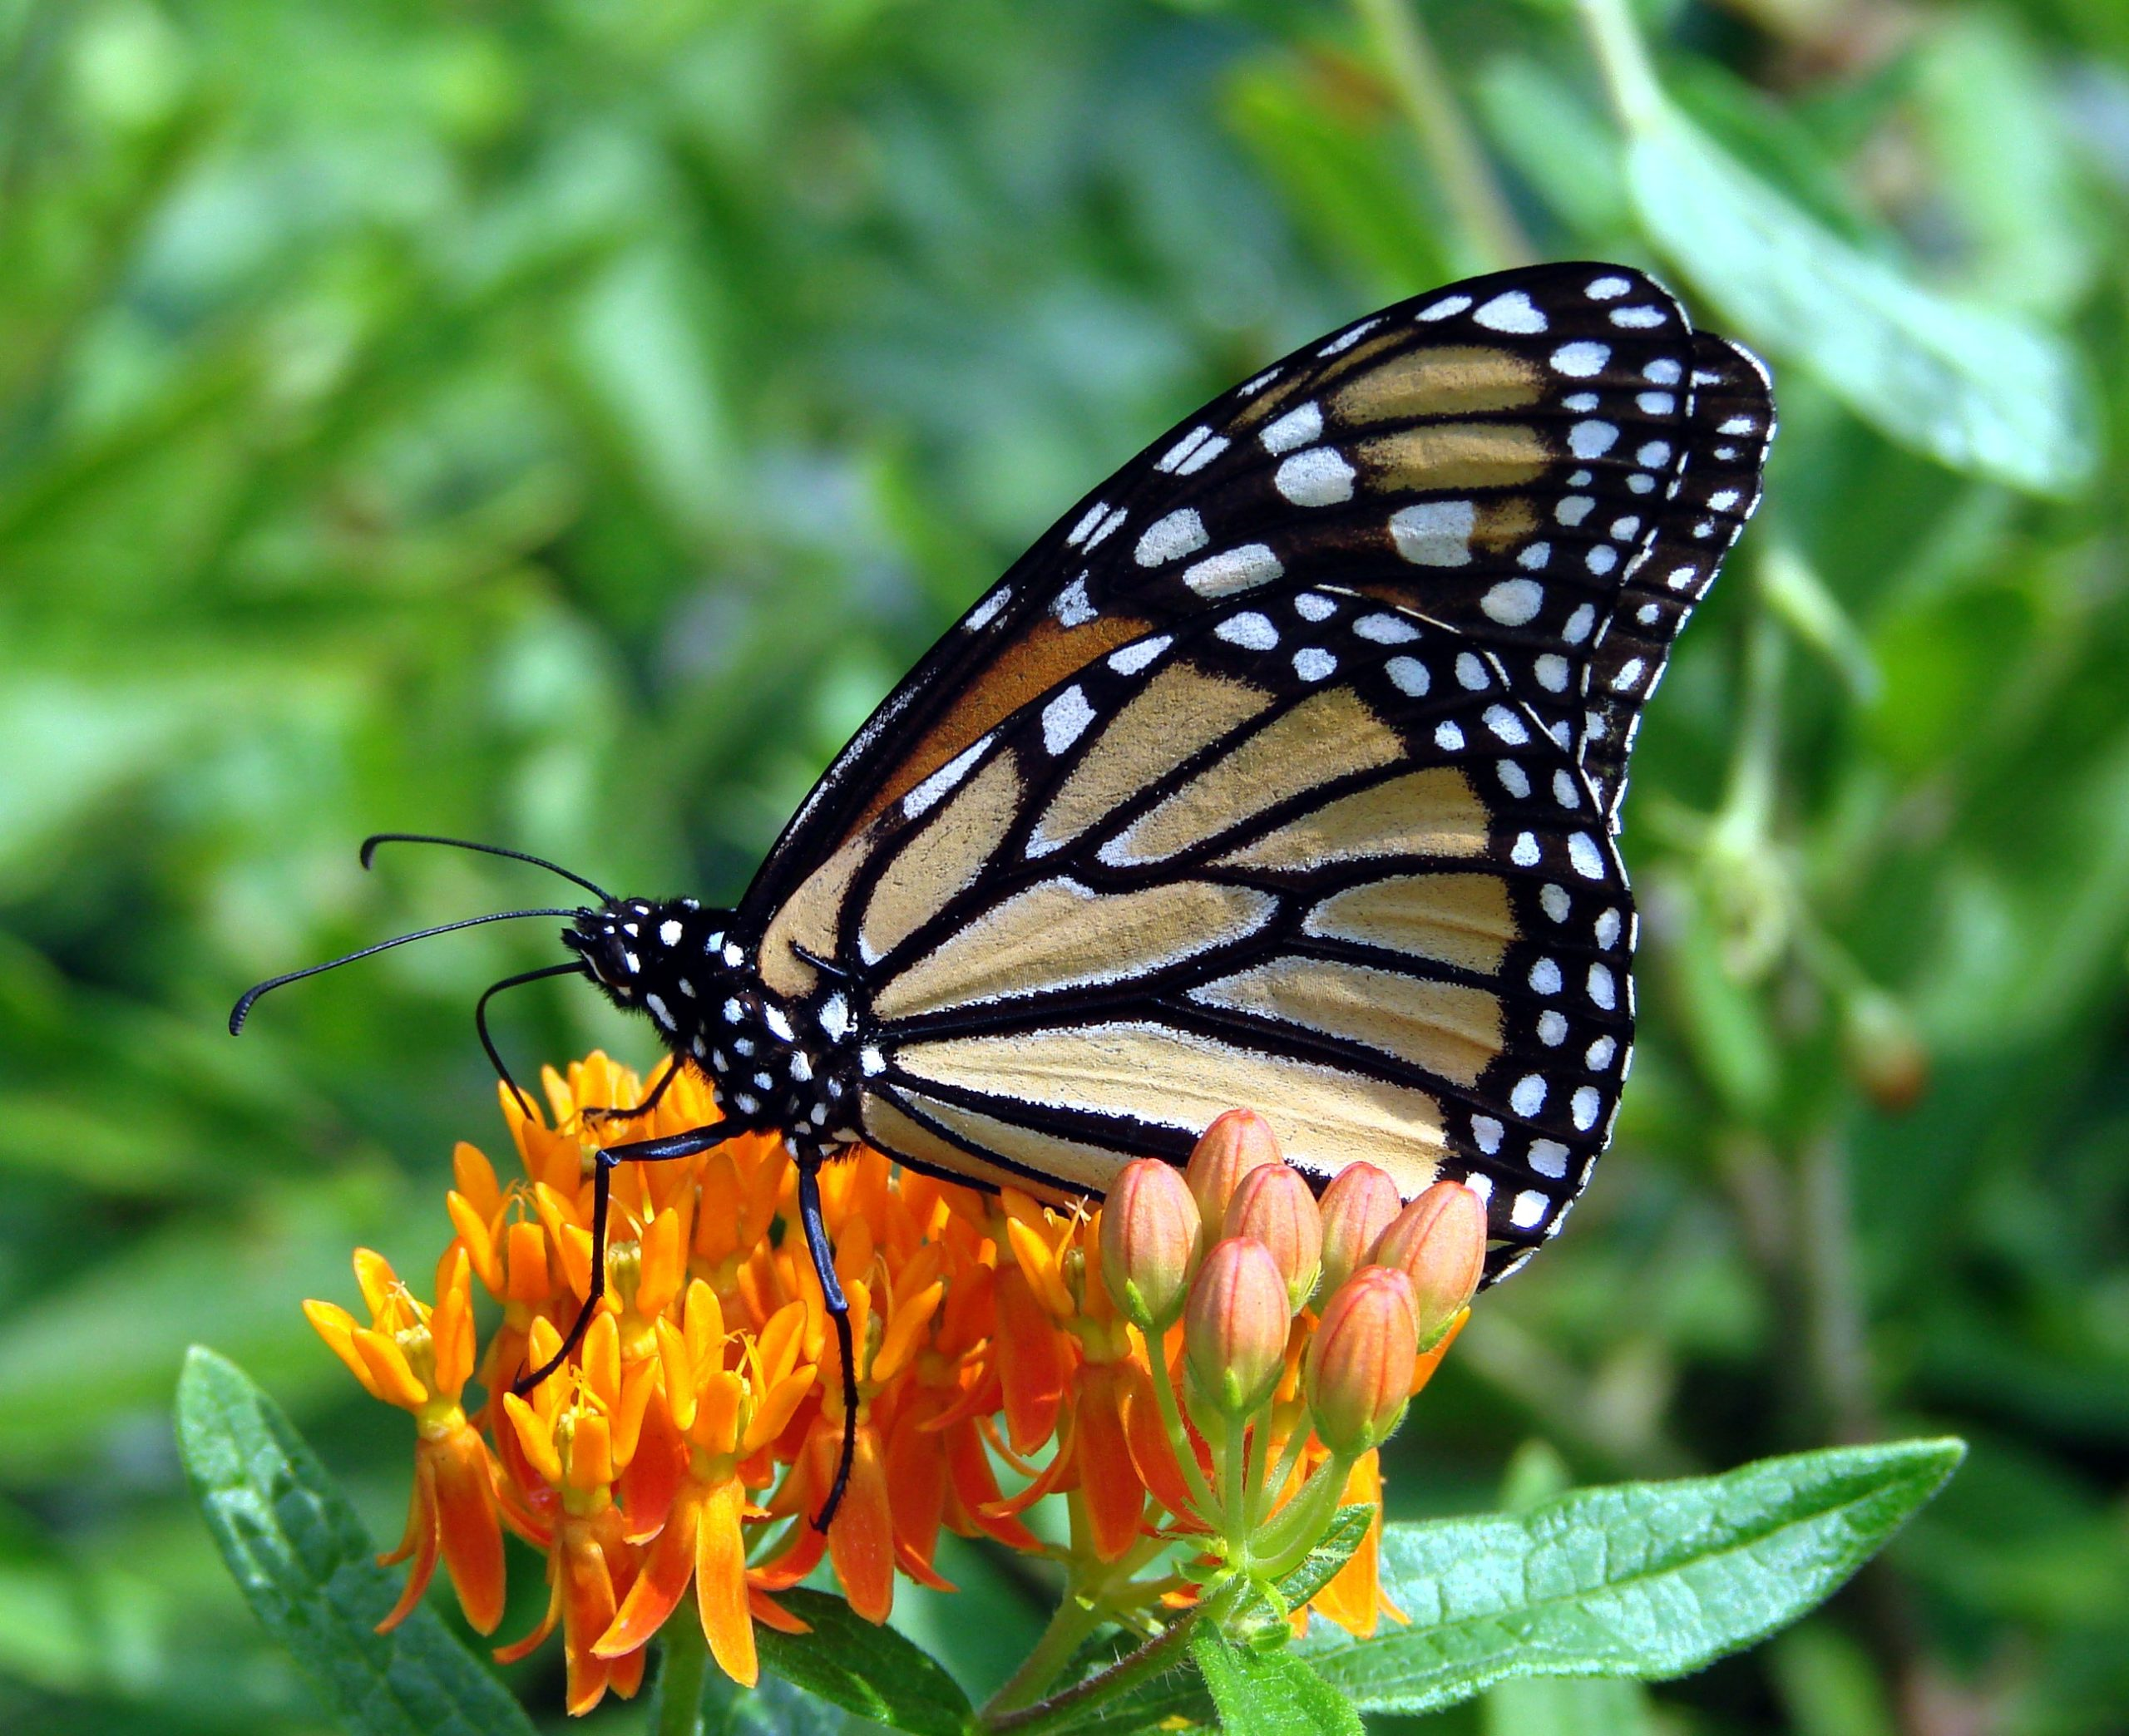 Butterfly weed attracts insect pollinators. By Martin LeBac.